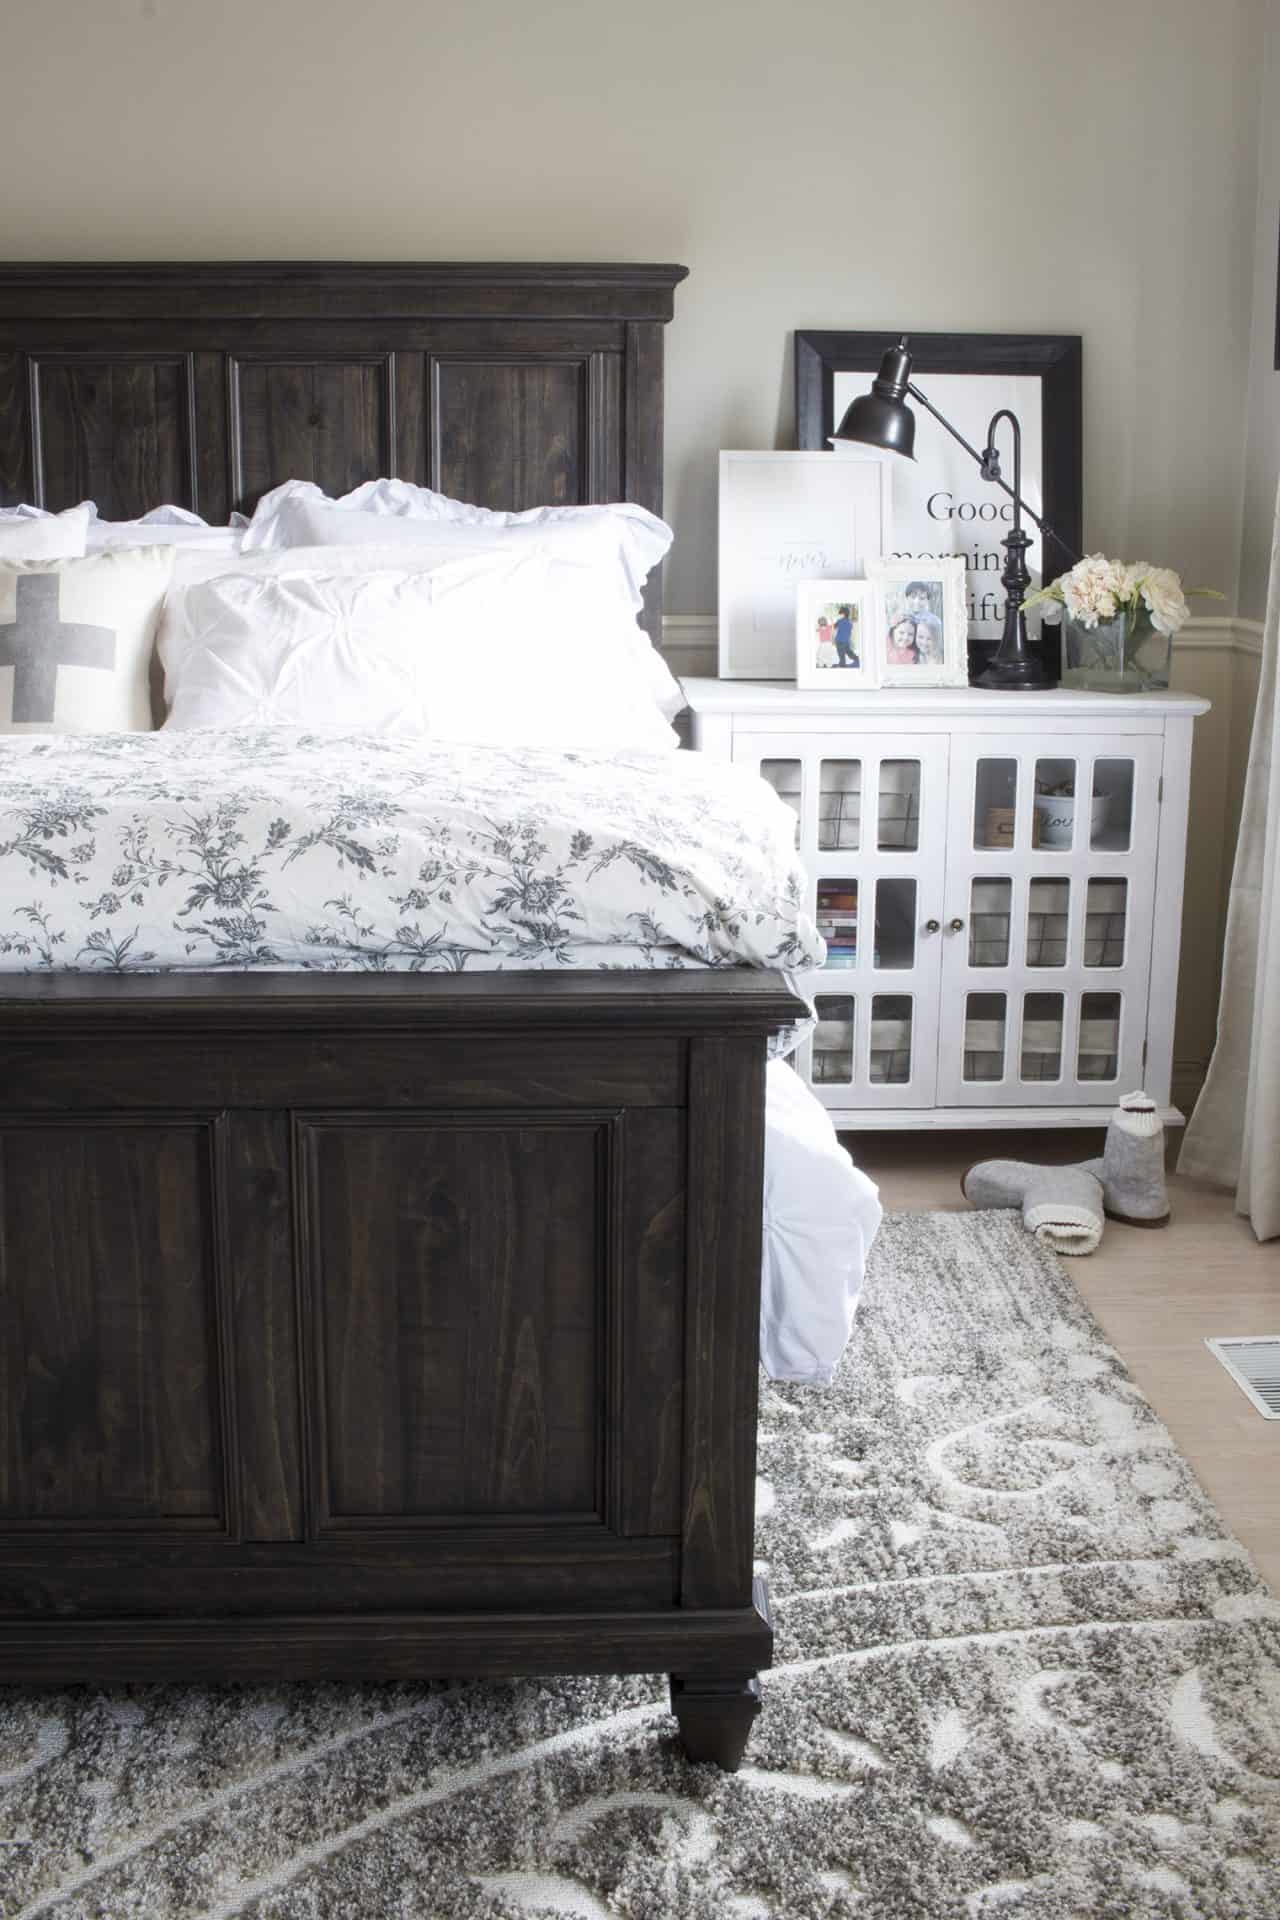 Bray Accent Cabinet as nightstands in Dean and Shannon's bedroom